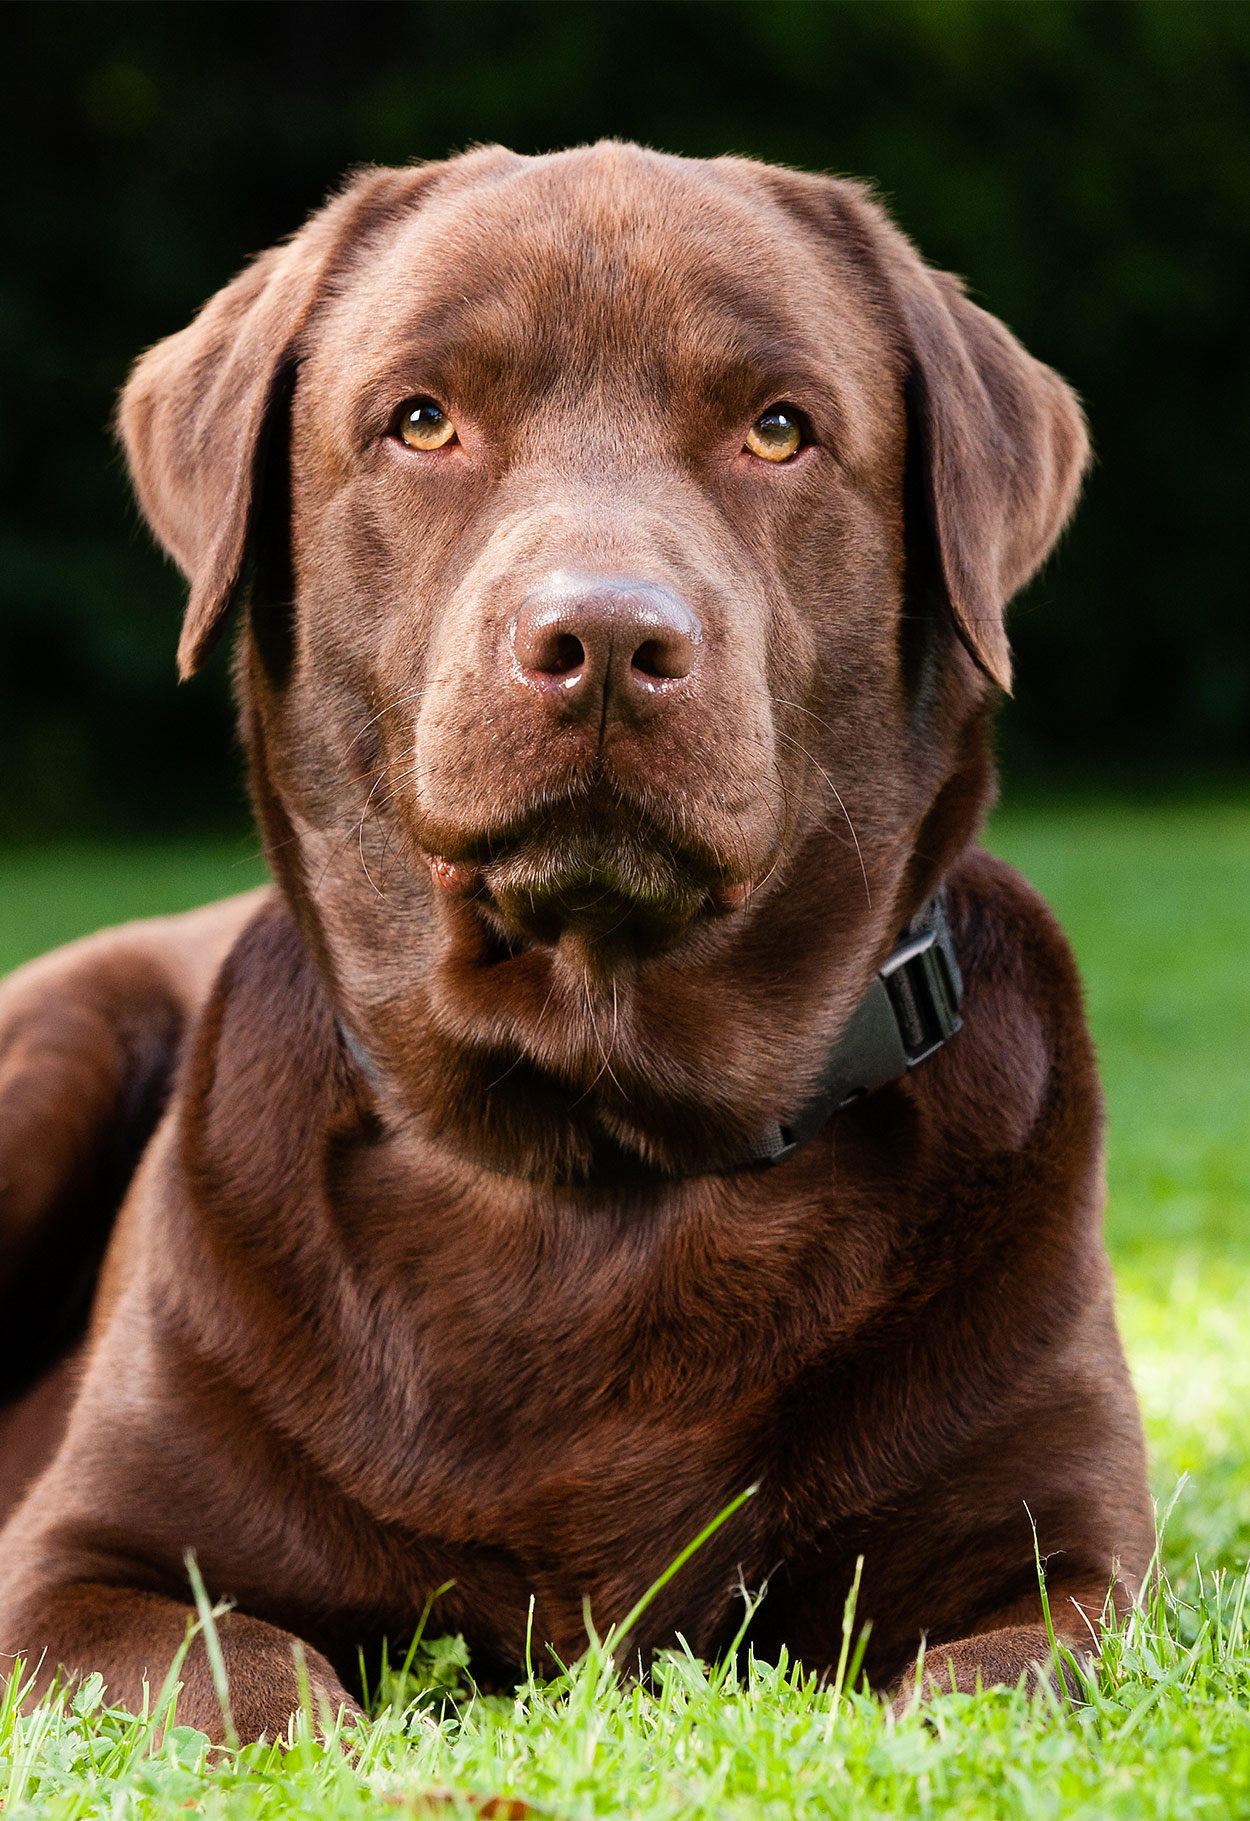 Staph Infection In Dogs - Everything You Need To Know